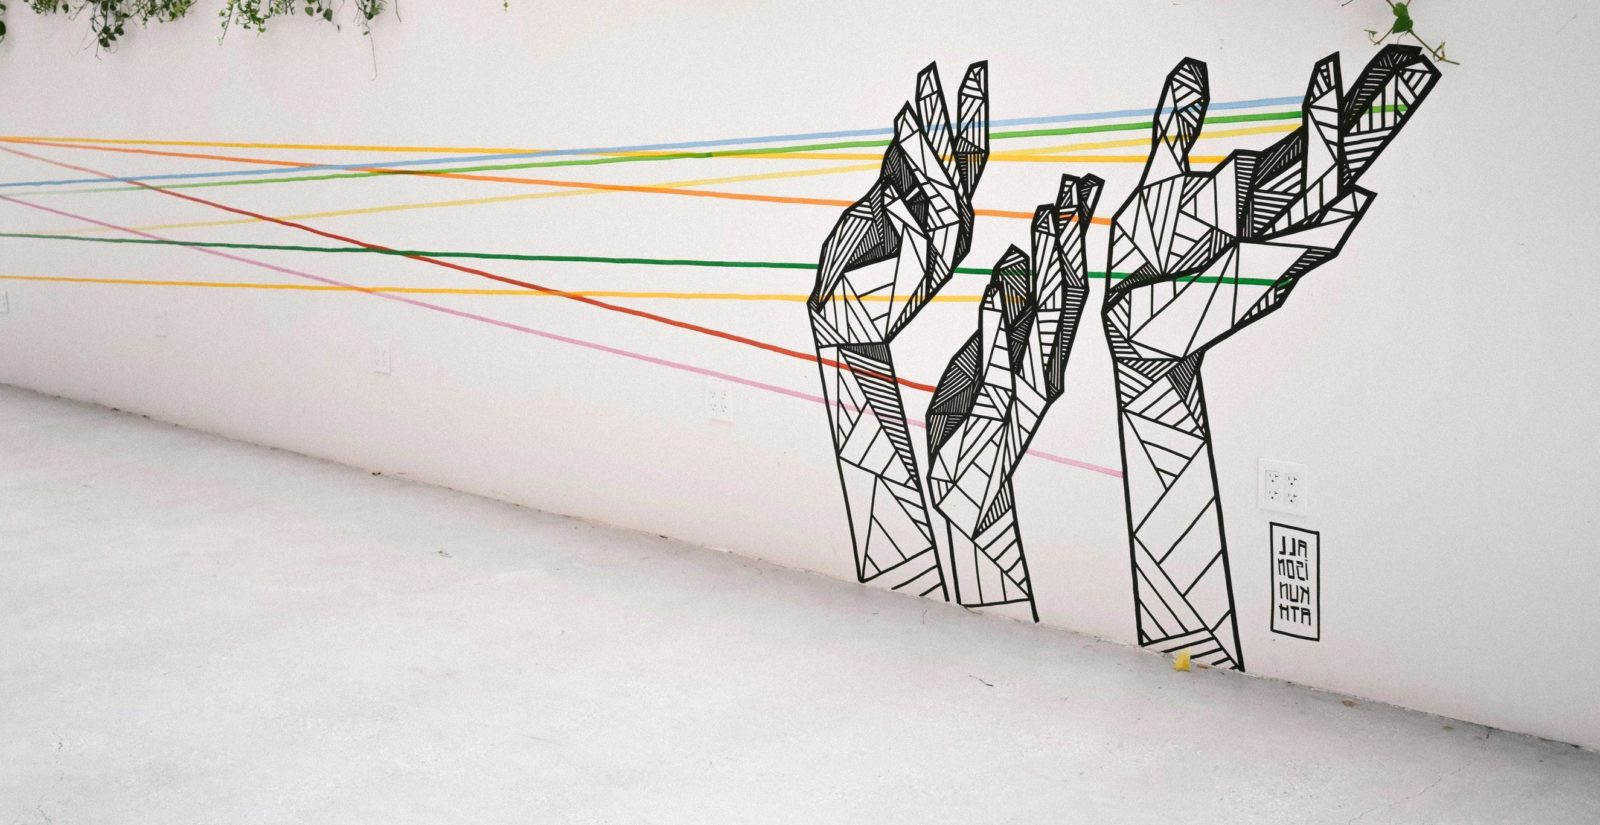 street art of geometric hands being connected